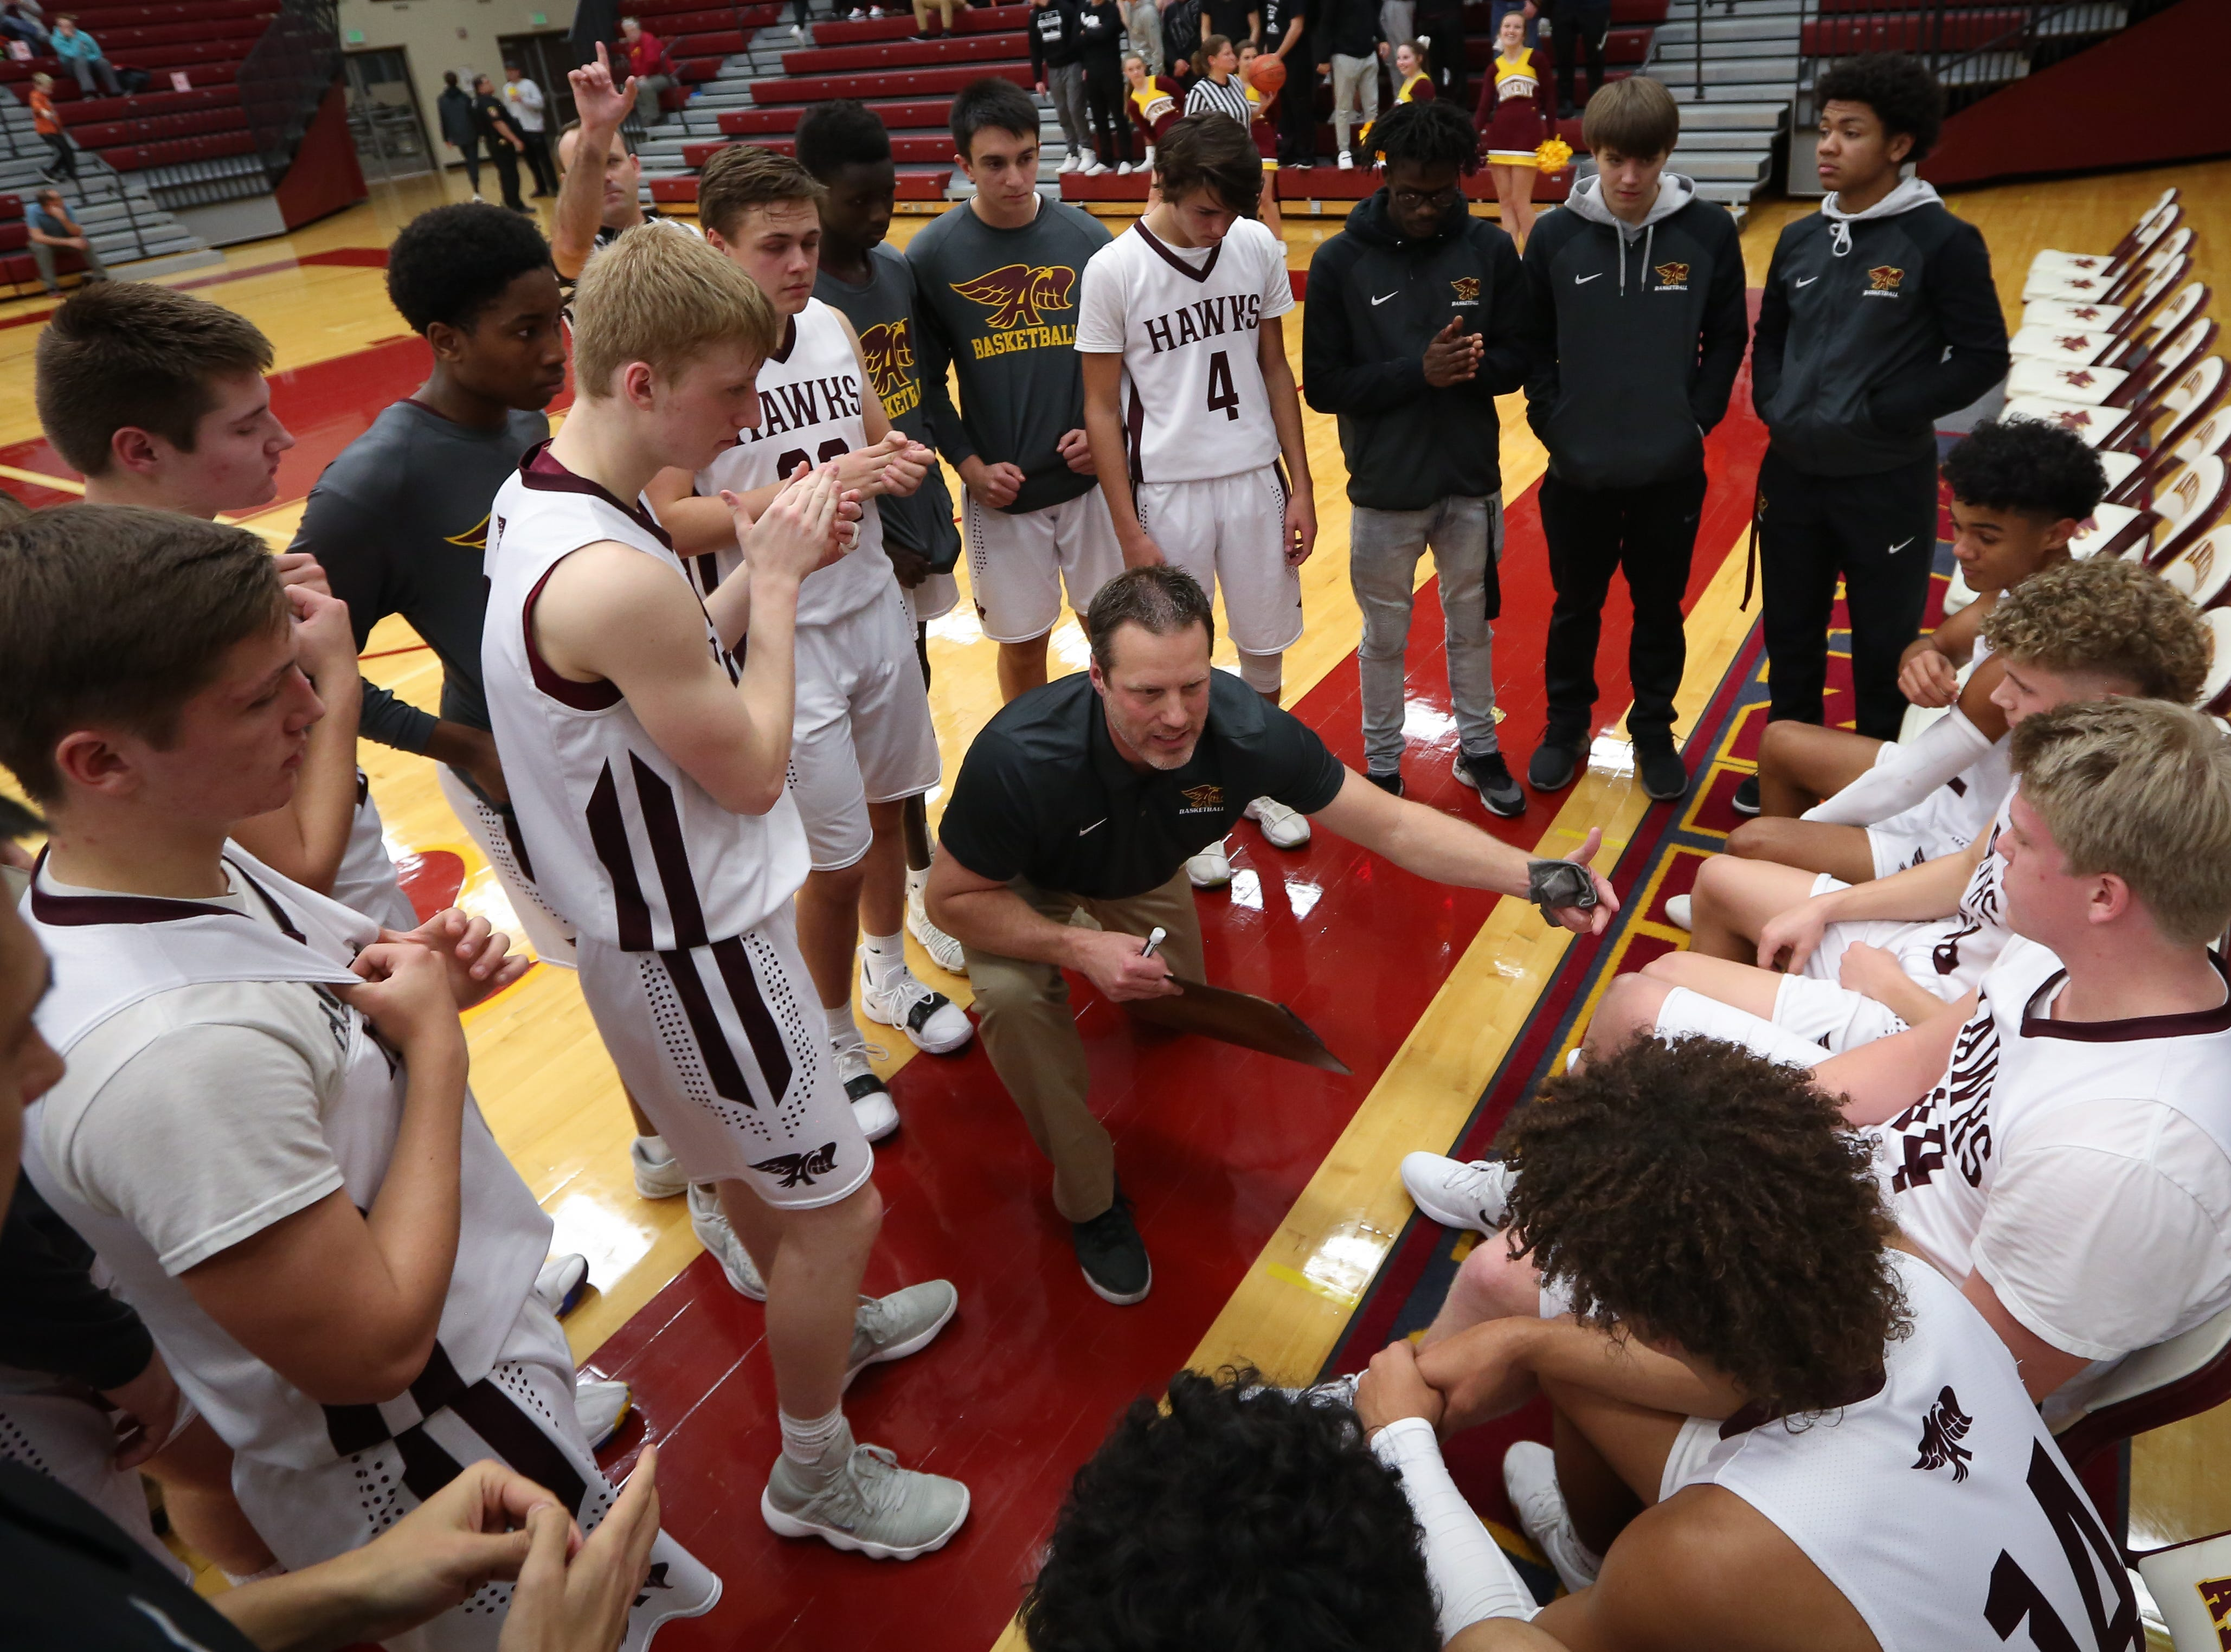 Ankeny head coach Bradnt Carlson gives instructions to his players during a boys high school basketball game between the Lincoln Railsplitters and the Ankeny Hawks at Ankeny High School on Dec. 4, 2018 in Ankeny, Iowa.